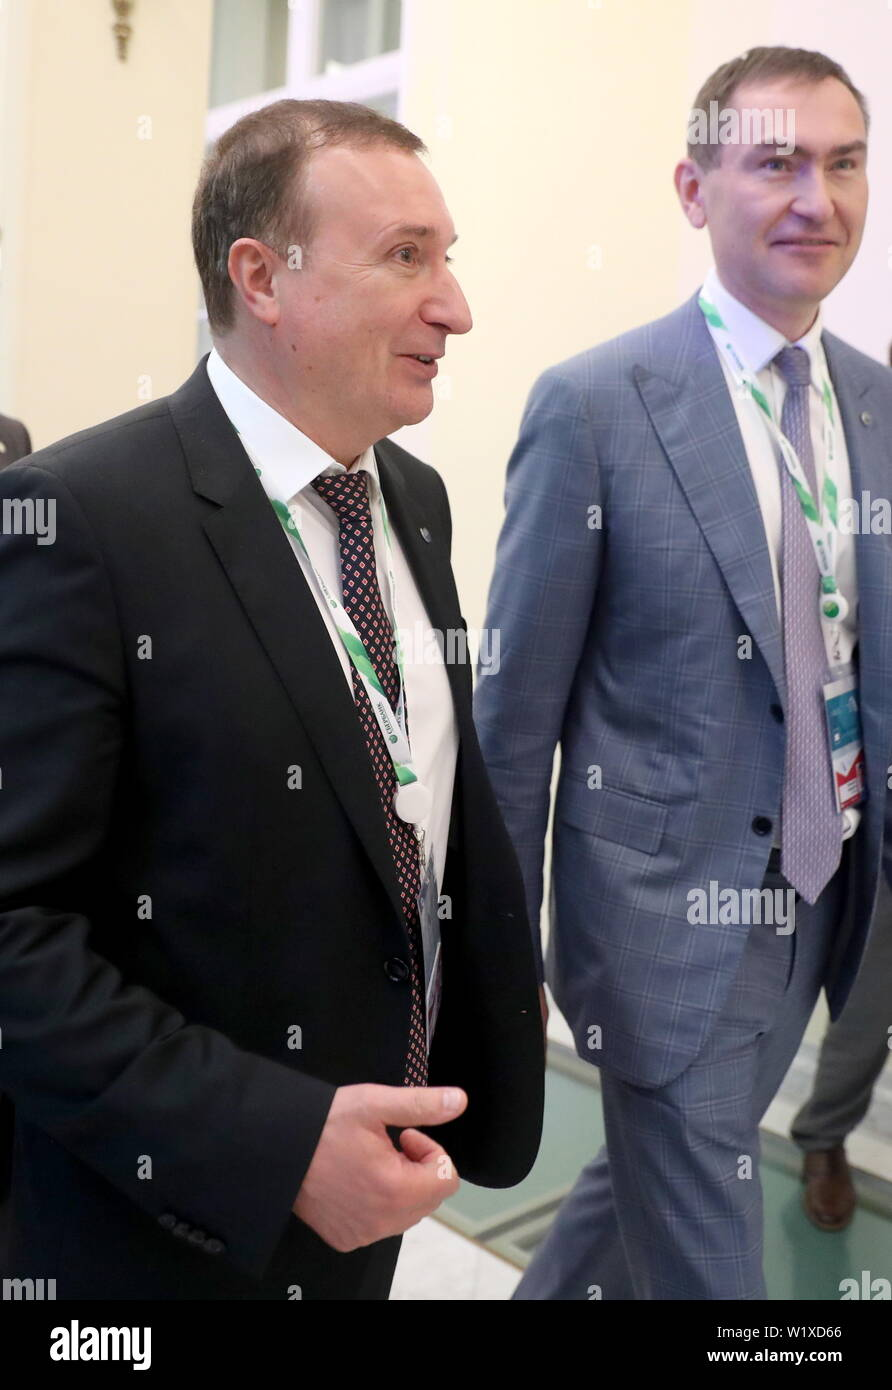 St Petersburg, Russia. 04th July, 2019. ST PETERSBURG, RUSSIA - JULY 4, 2019: Victor Ventimiglia Alonso (front), Head of the Sberbank Severo-Zapadny Branch, attends the 2019 International Financial Congress at Boris Yeltsin Presidential Library. Peter Kovalev/TASS Credit: ITAR-TASS News Agency/Alamy Live News - Stock Image